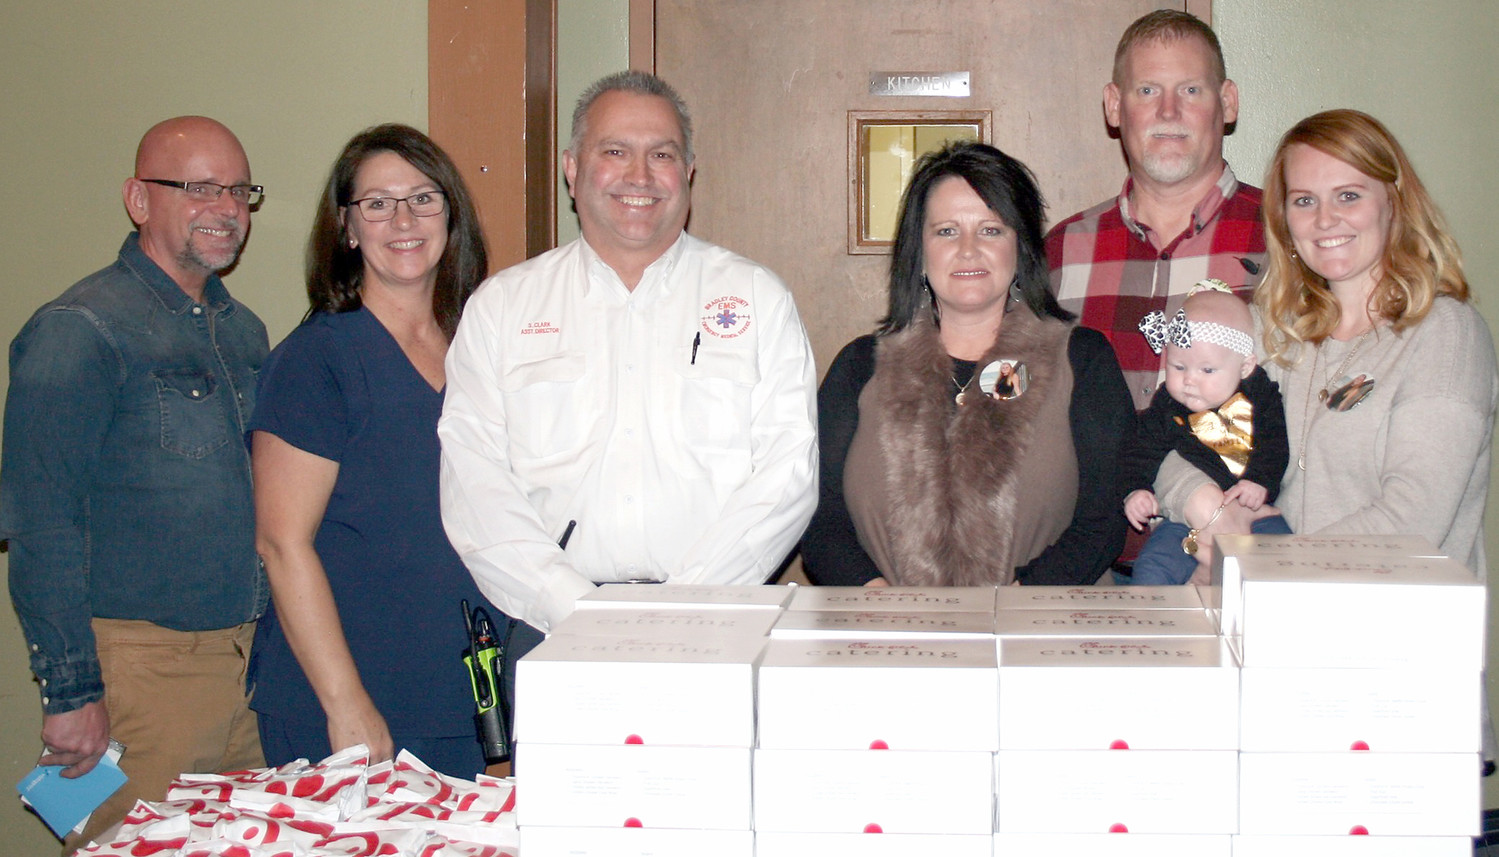 THE ORGANIZERS and speakers of the event stand with their bounty of Chick-fil-A before event's start. From left are Danny Marshall, Clingan Ridge; Tricia Marshall, Clingan Ridge; Stan Clark, Bradley County EMS Assistant Director; Sherry Wright, Maranda Wright's mother; Tim Wright, Maranda Wright's father; and Emma Ezell, Maranda Wright's sister. Little Addie Jay Ezell, Maranda Wright's niece, is being held by Emma Ezell.